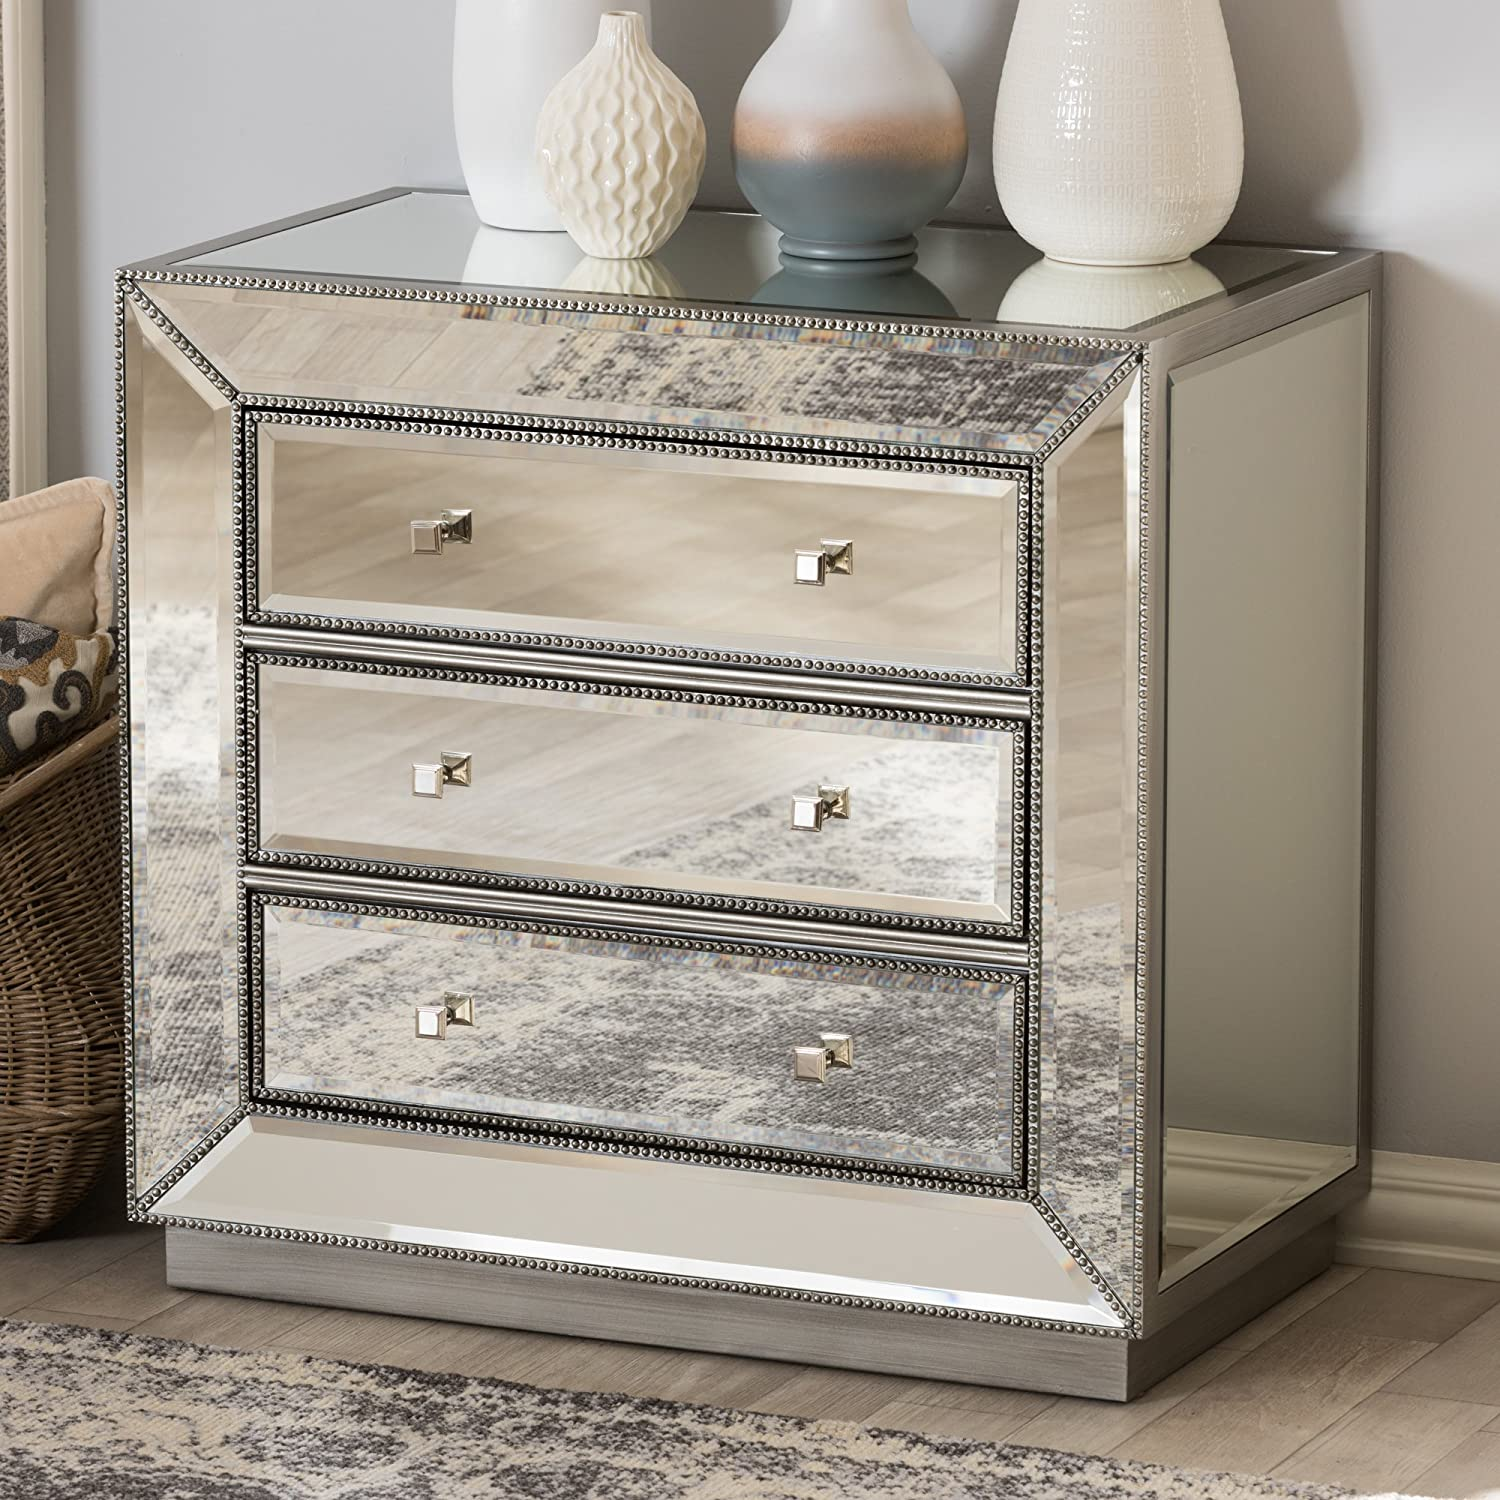 Baxton Studio Chests of Drawers//Bureaus 3-Drawer Chest Silver Mirrored Wholesale Interiors 424-7485-AMZ